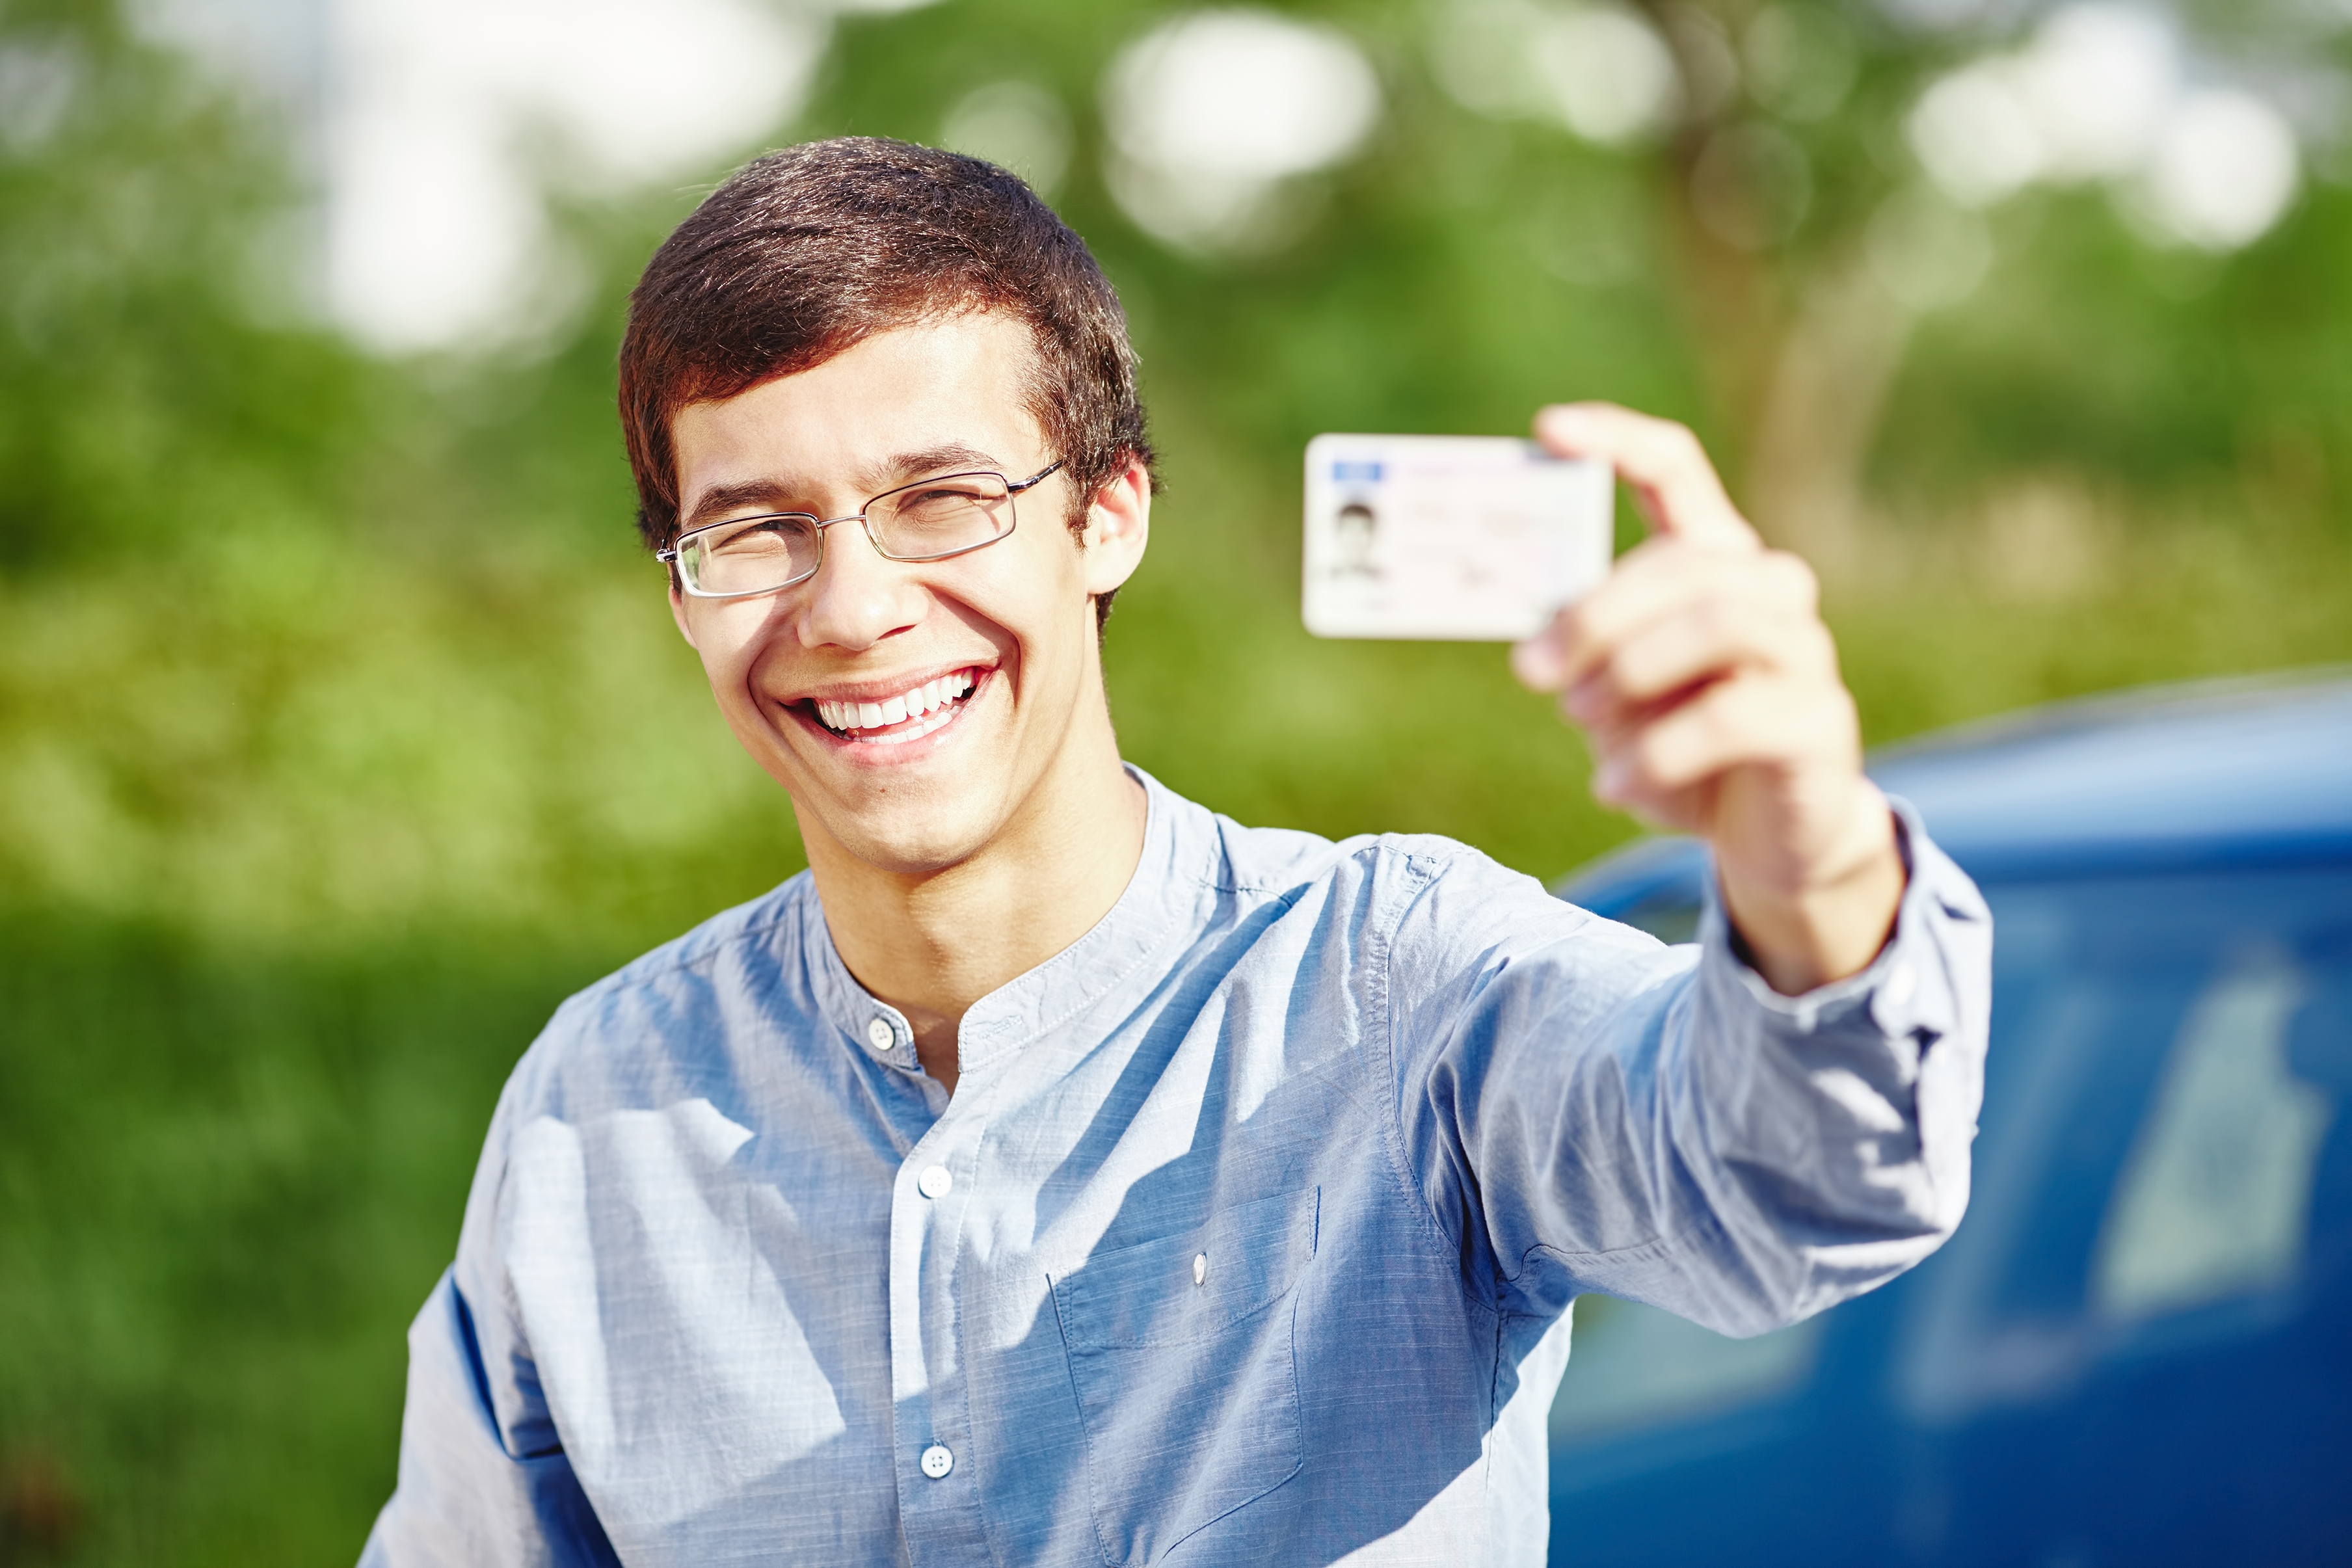 Six Points of Identification for the DMV in New Jersey